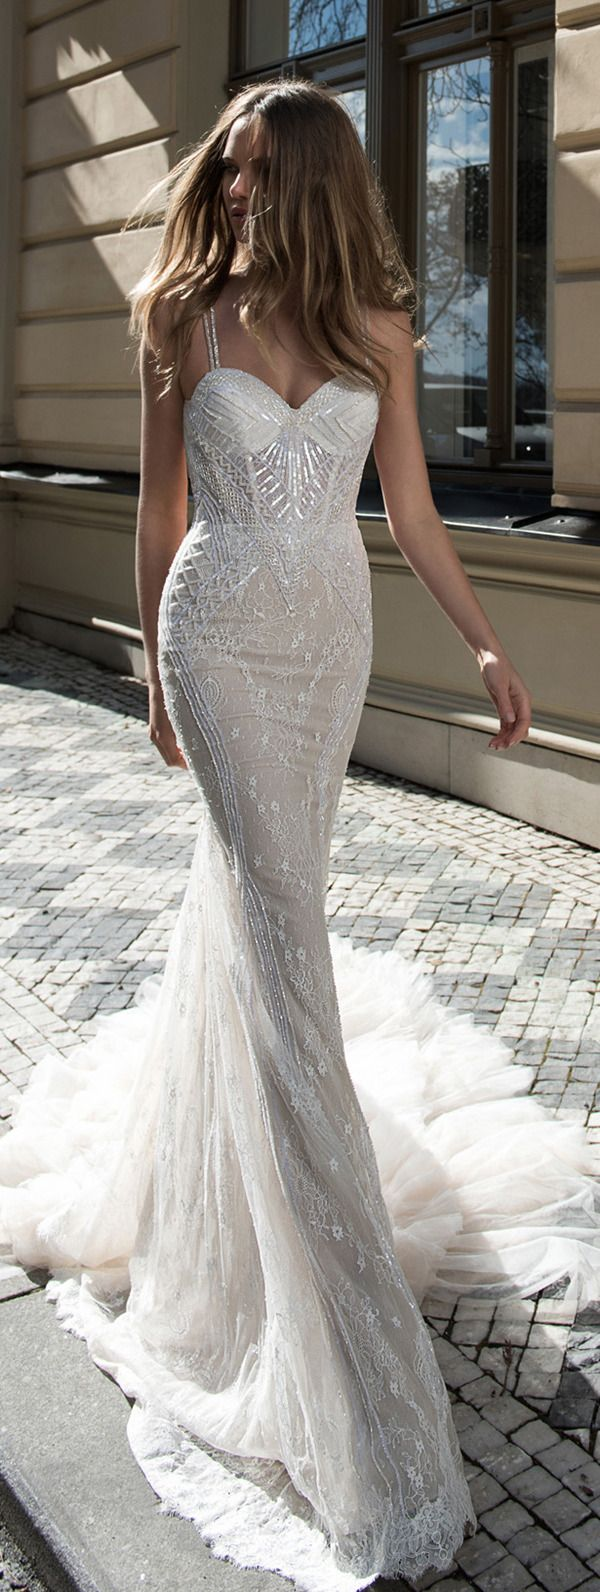 berta bridal vintage sequins wedding dresses